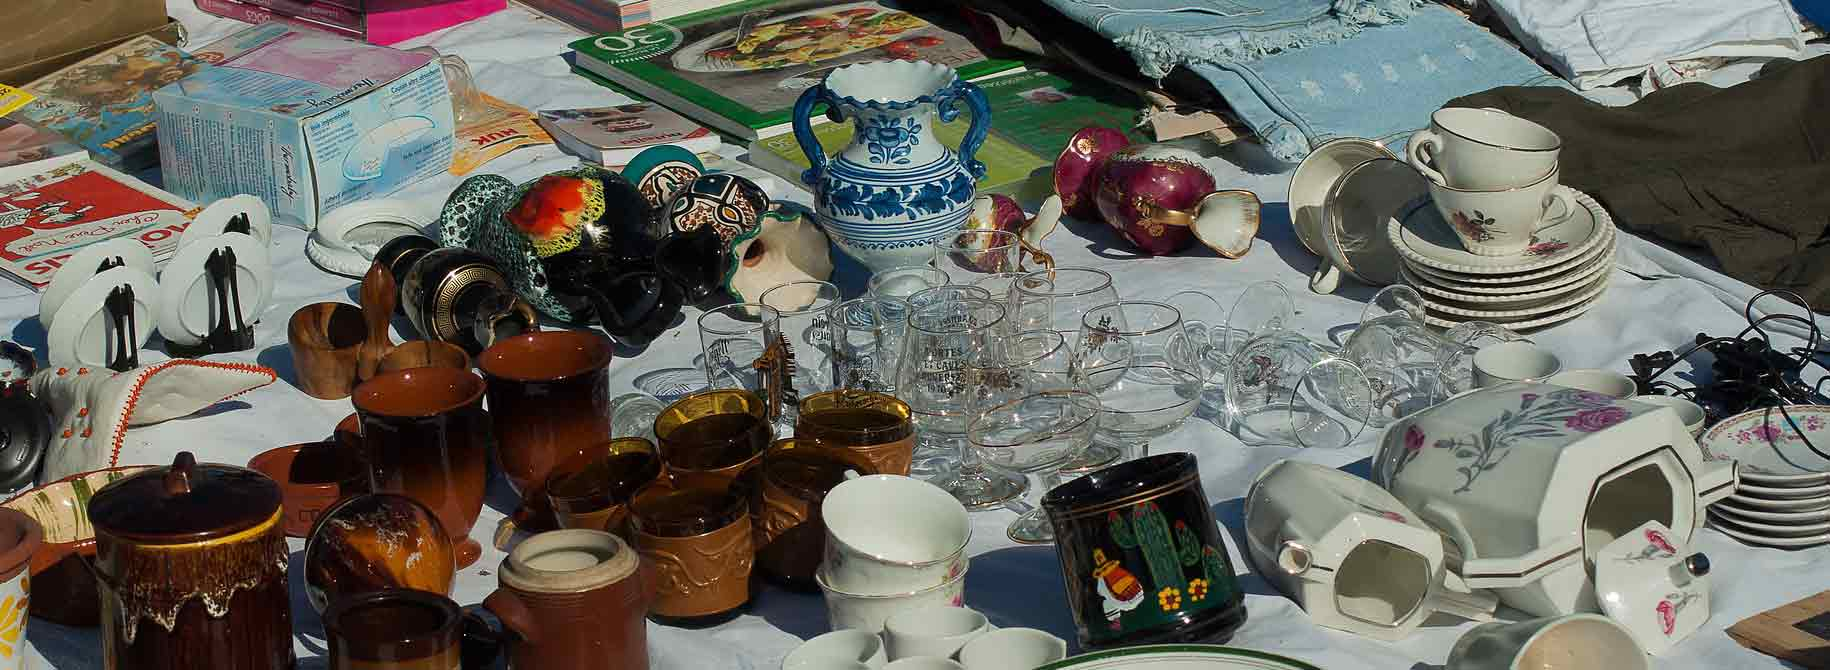 picture of a flea market table with collection of things